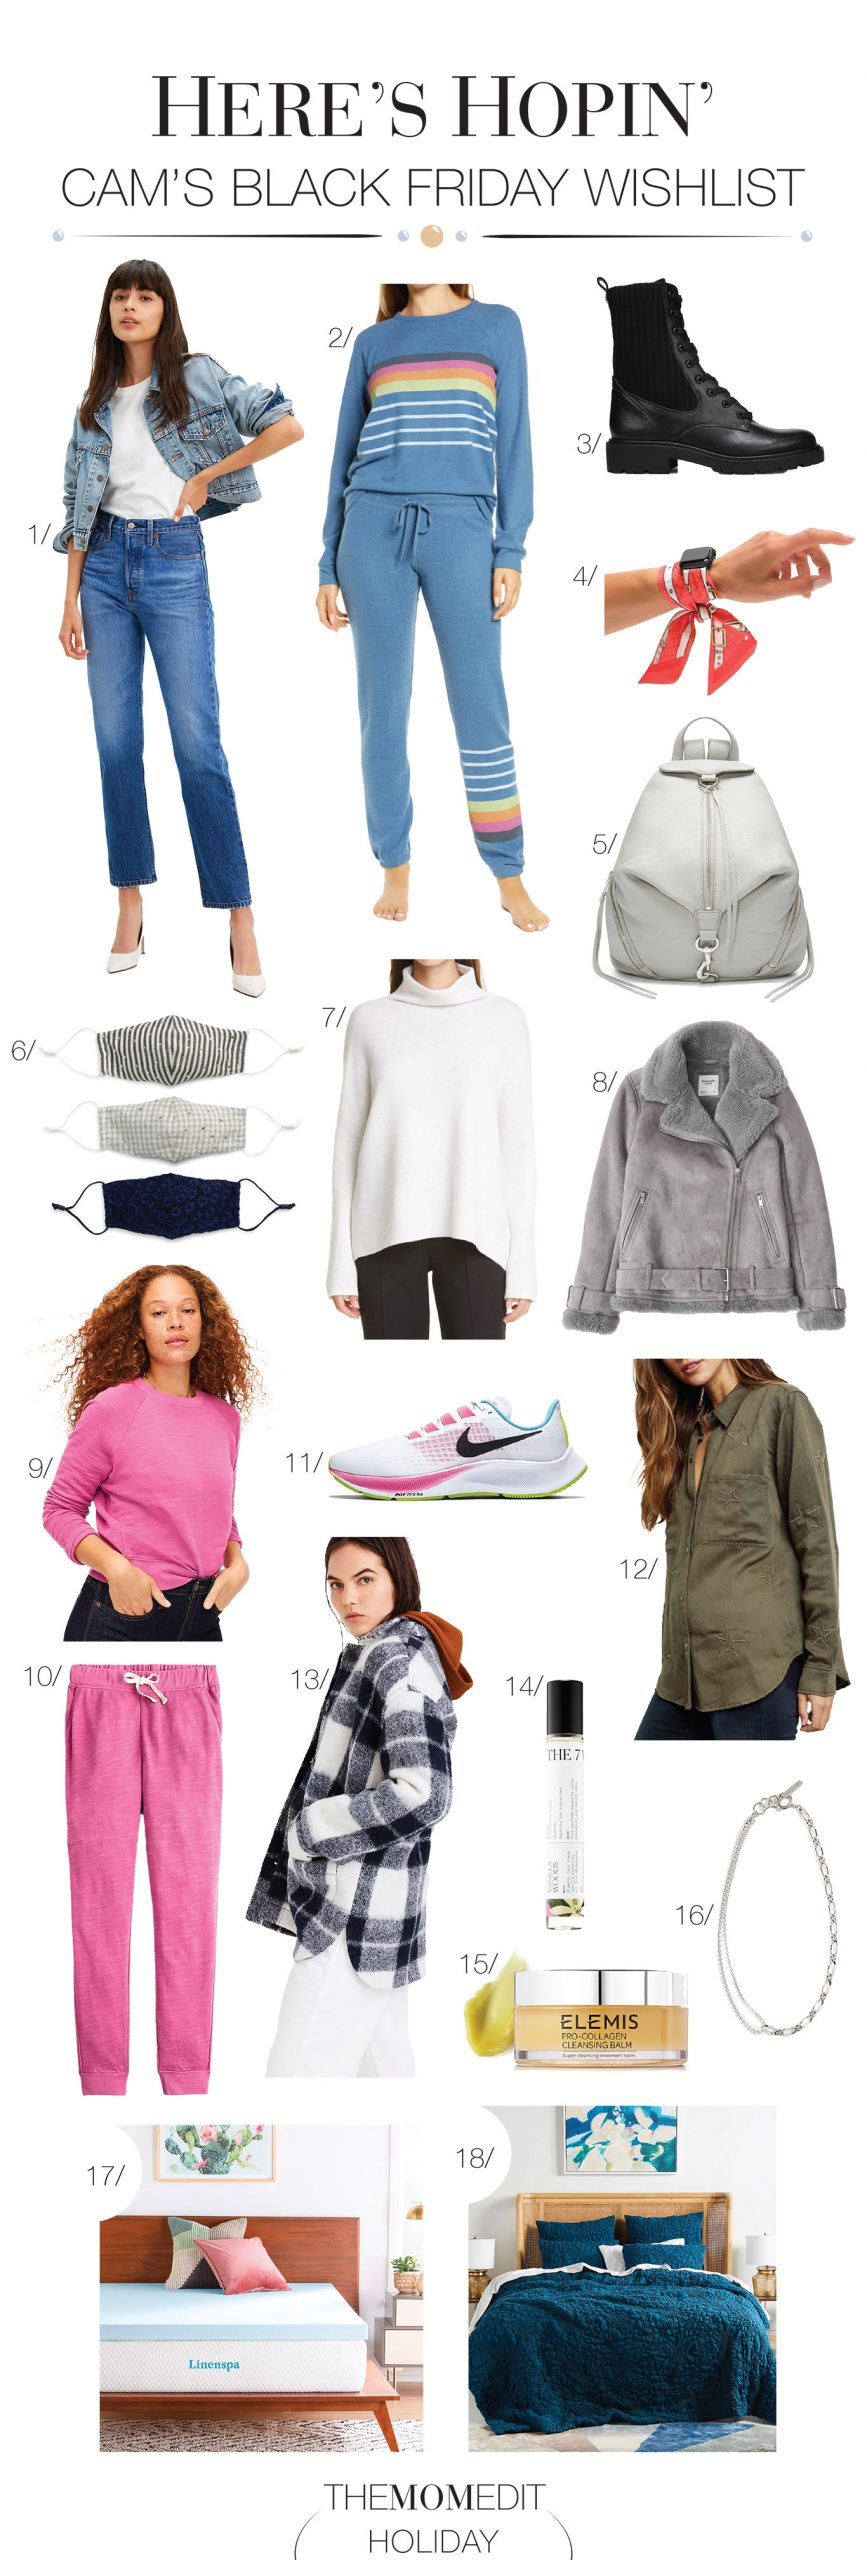 We're eyeing all things pretty in this Black Friday shopping list...Rebecca Minkoff, Vince, Rails, Elemis & even an Anthro quilt. Let the deals roll in...